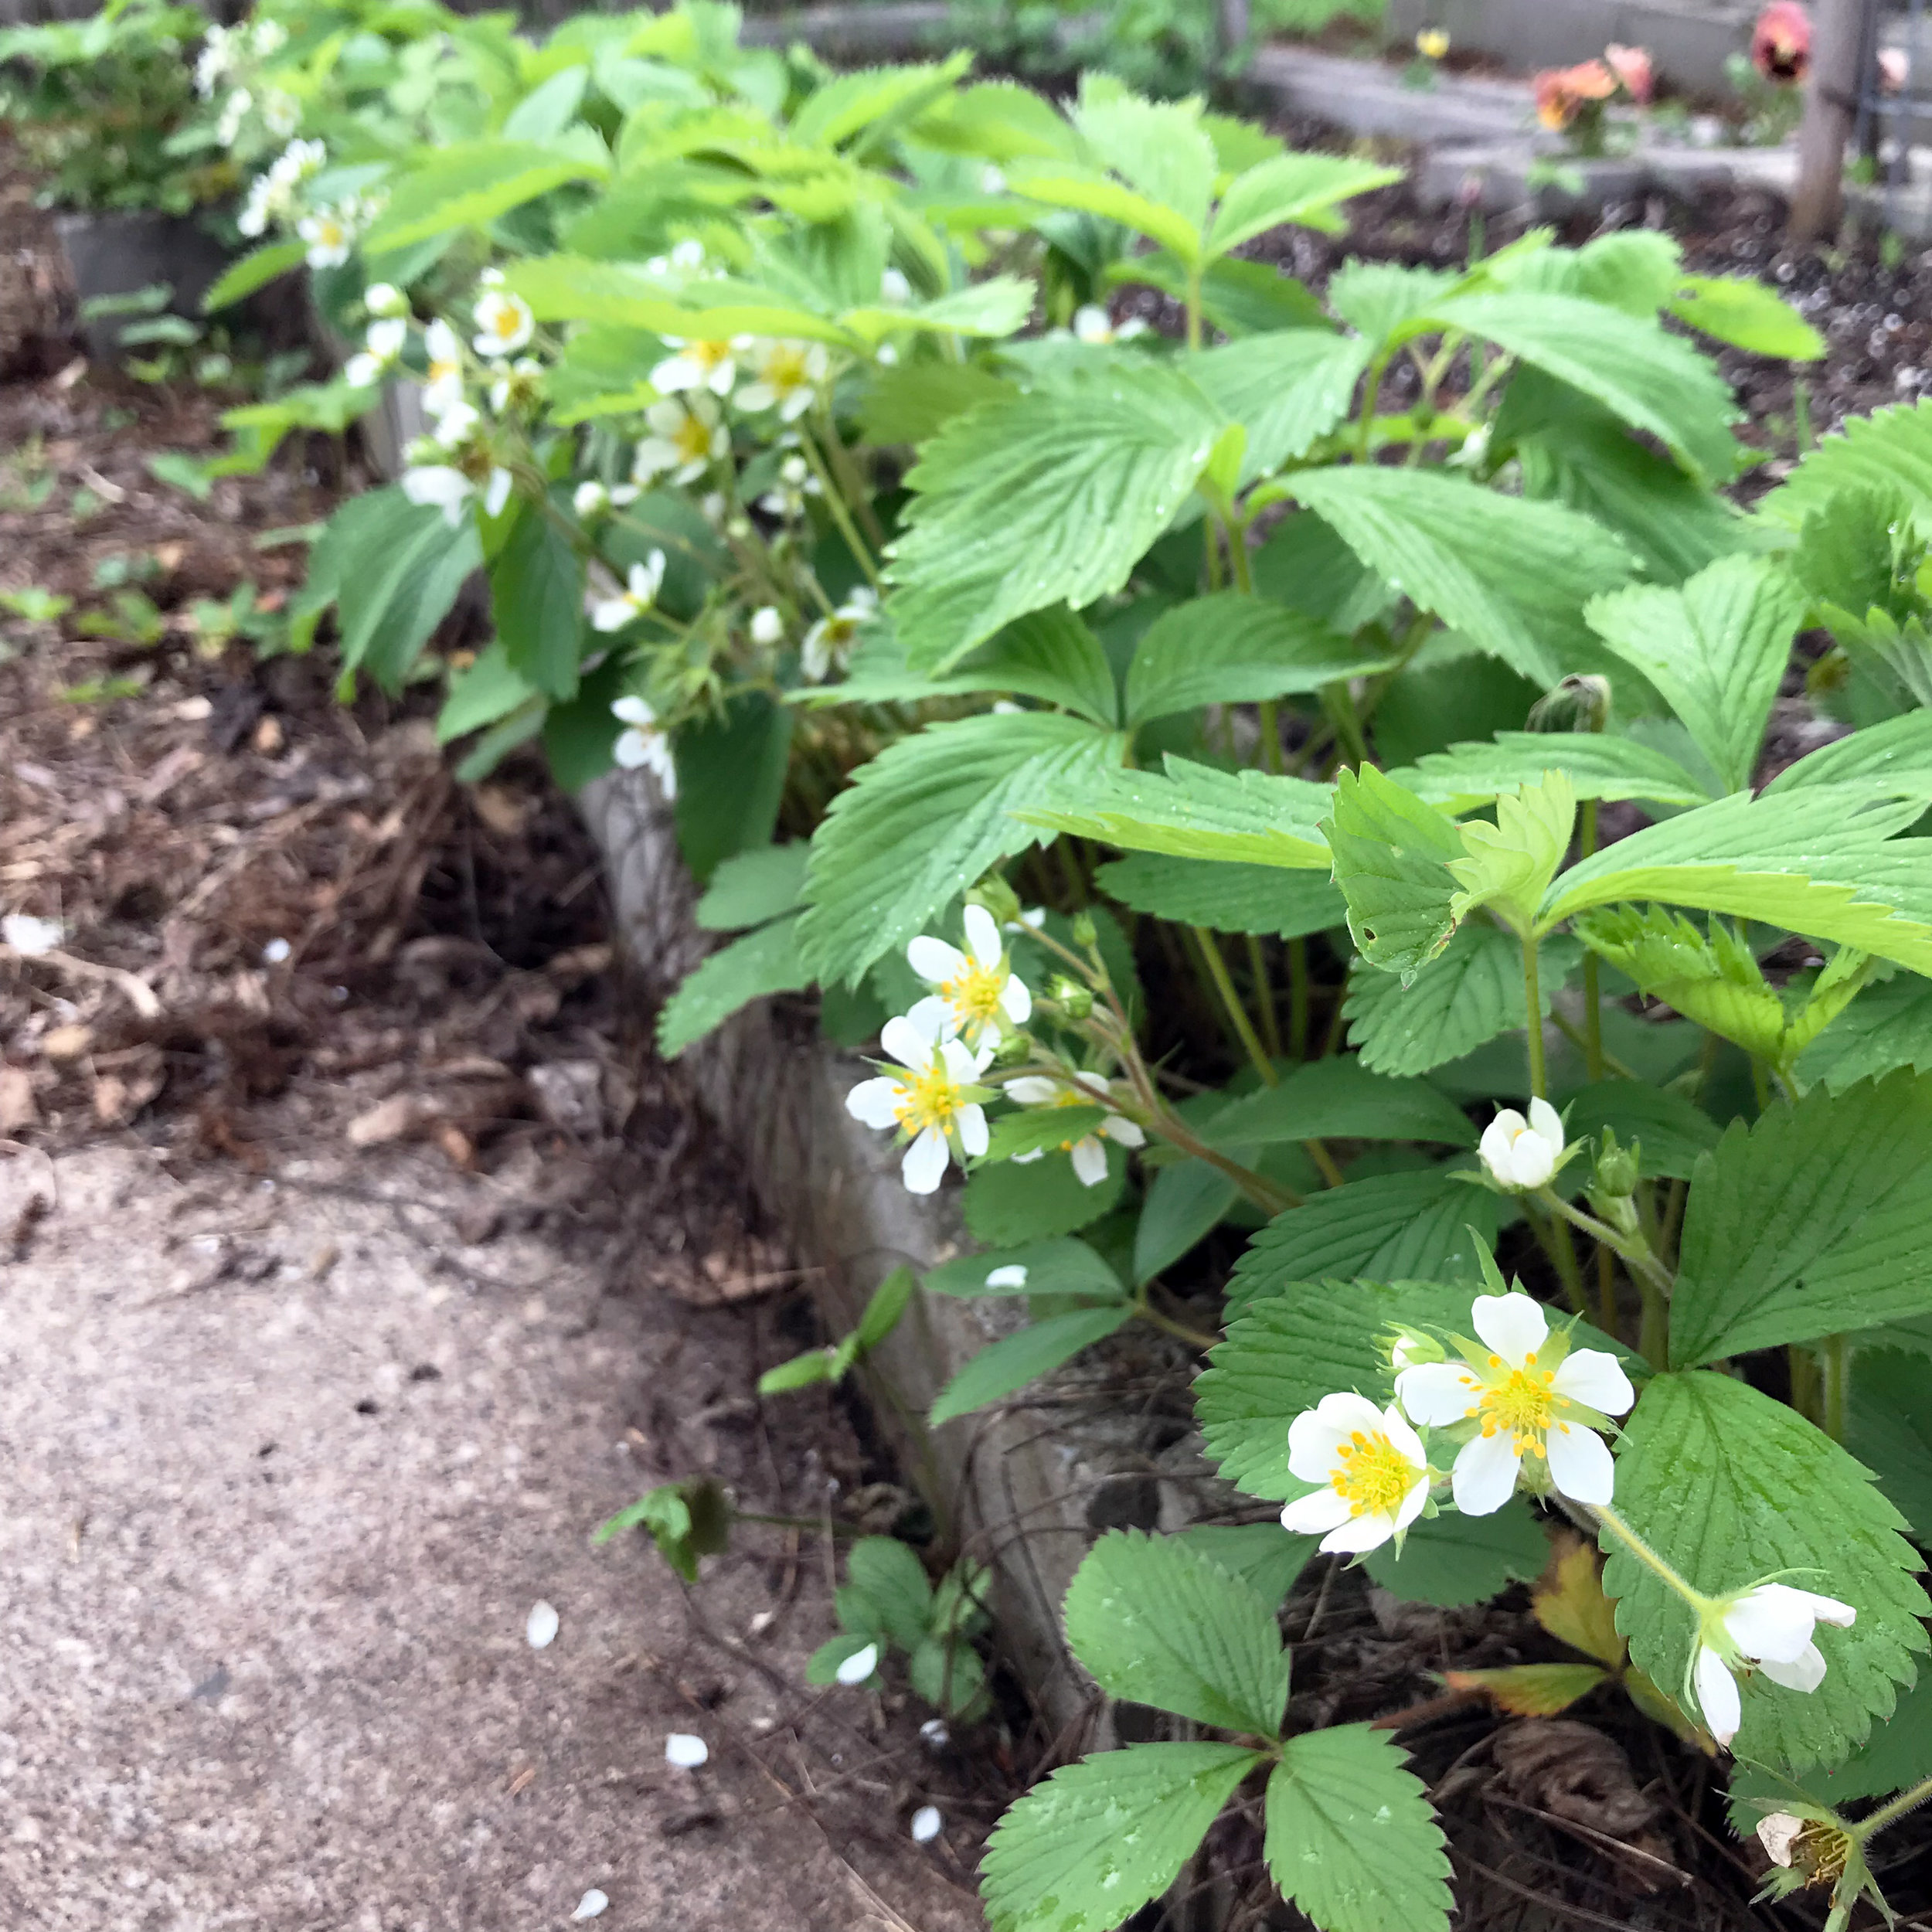 Strawberry Plants Blooming in the Cinder Block Holes of My Raised Beds